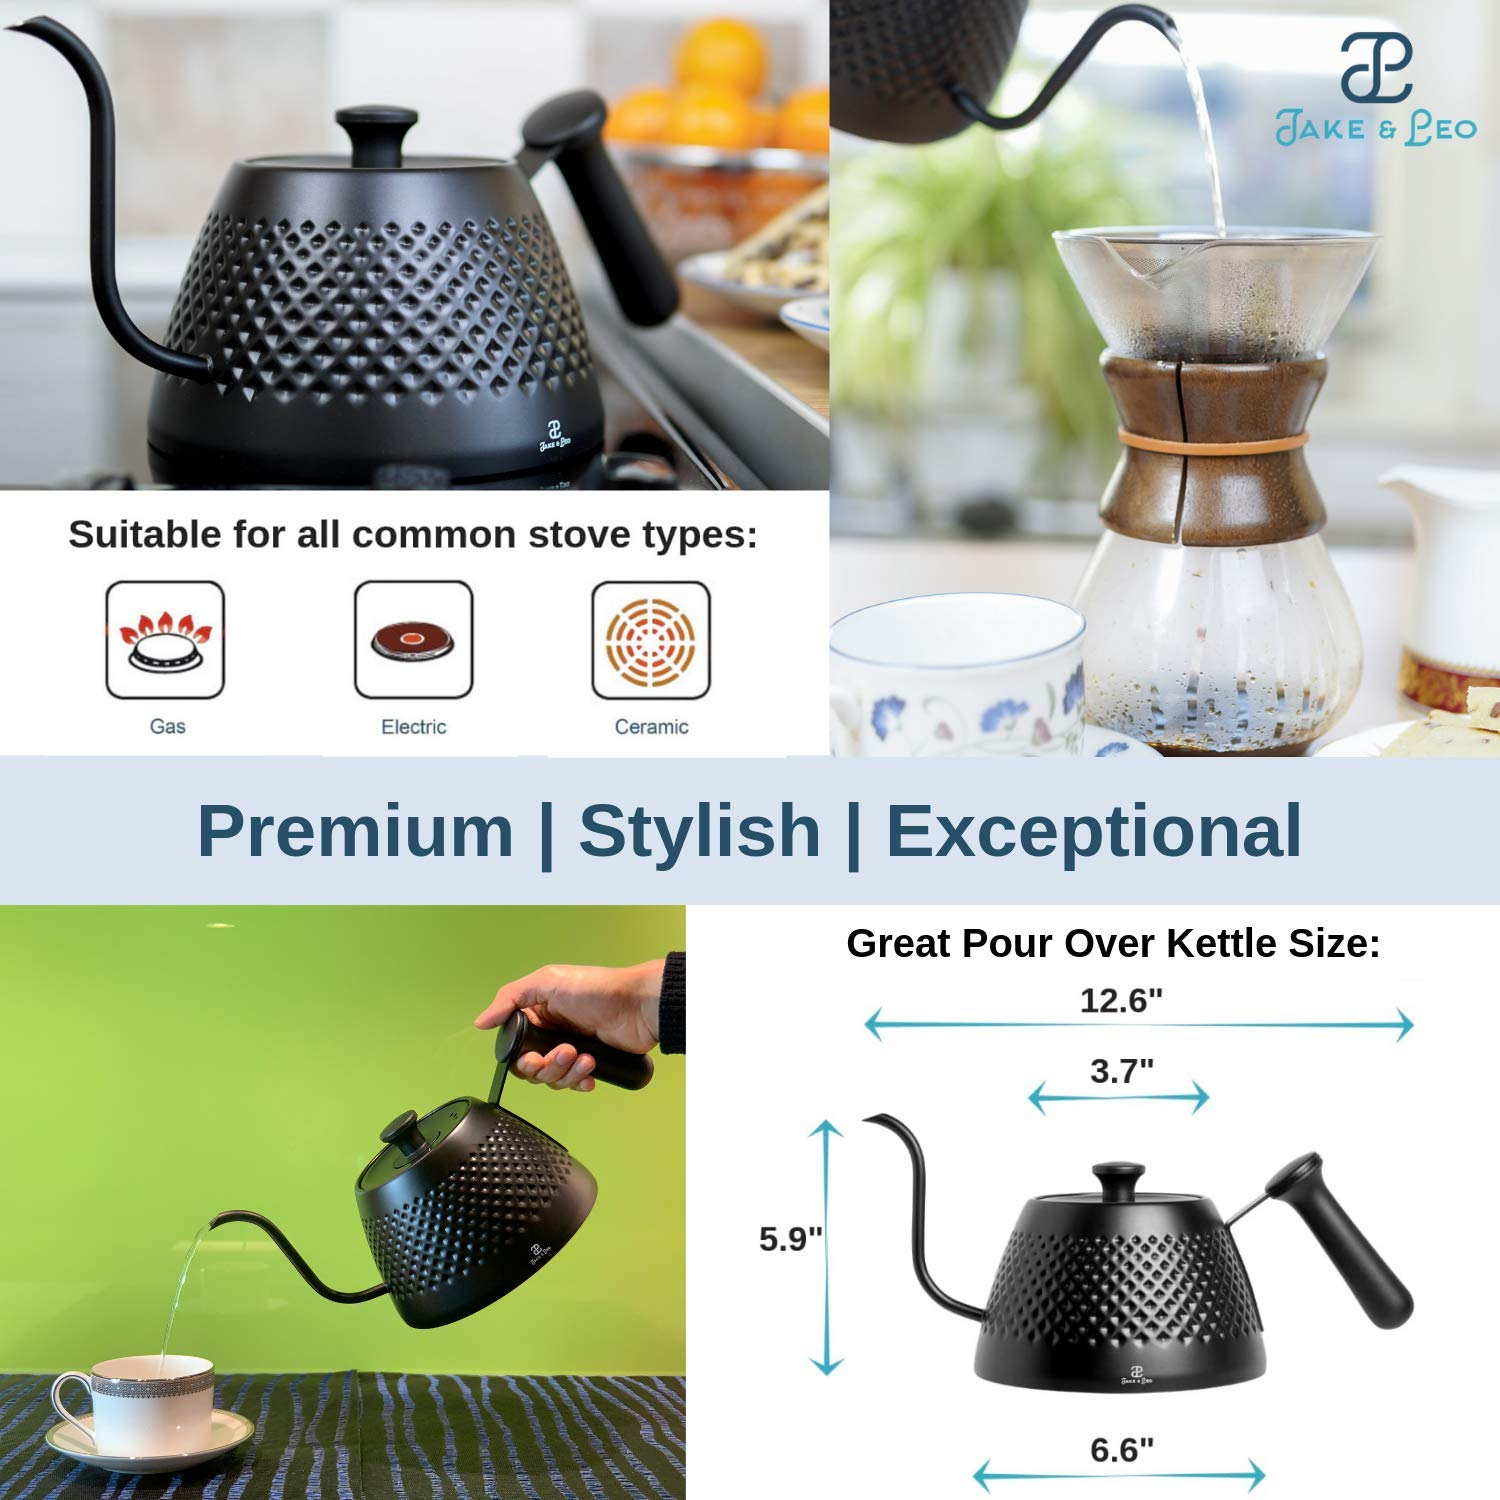 Jake & Leo Pour Over Kettle - Premium Stylish Dimpled Design, Stainless Steel - Gooseneck Specialty Kettle for Kitchen Stovetop - 34oz, Matte Black, Long Spout for Boiling, Pouring; Brew Coffee & Tea by Jake & Leo (Image #2)